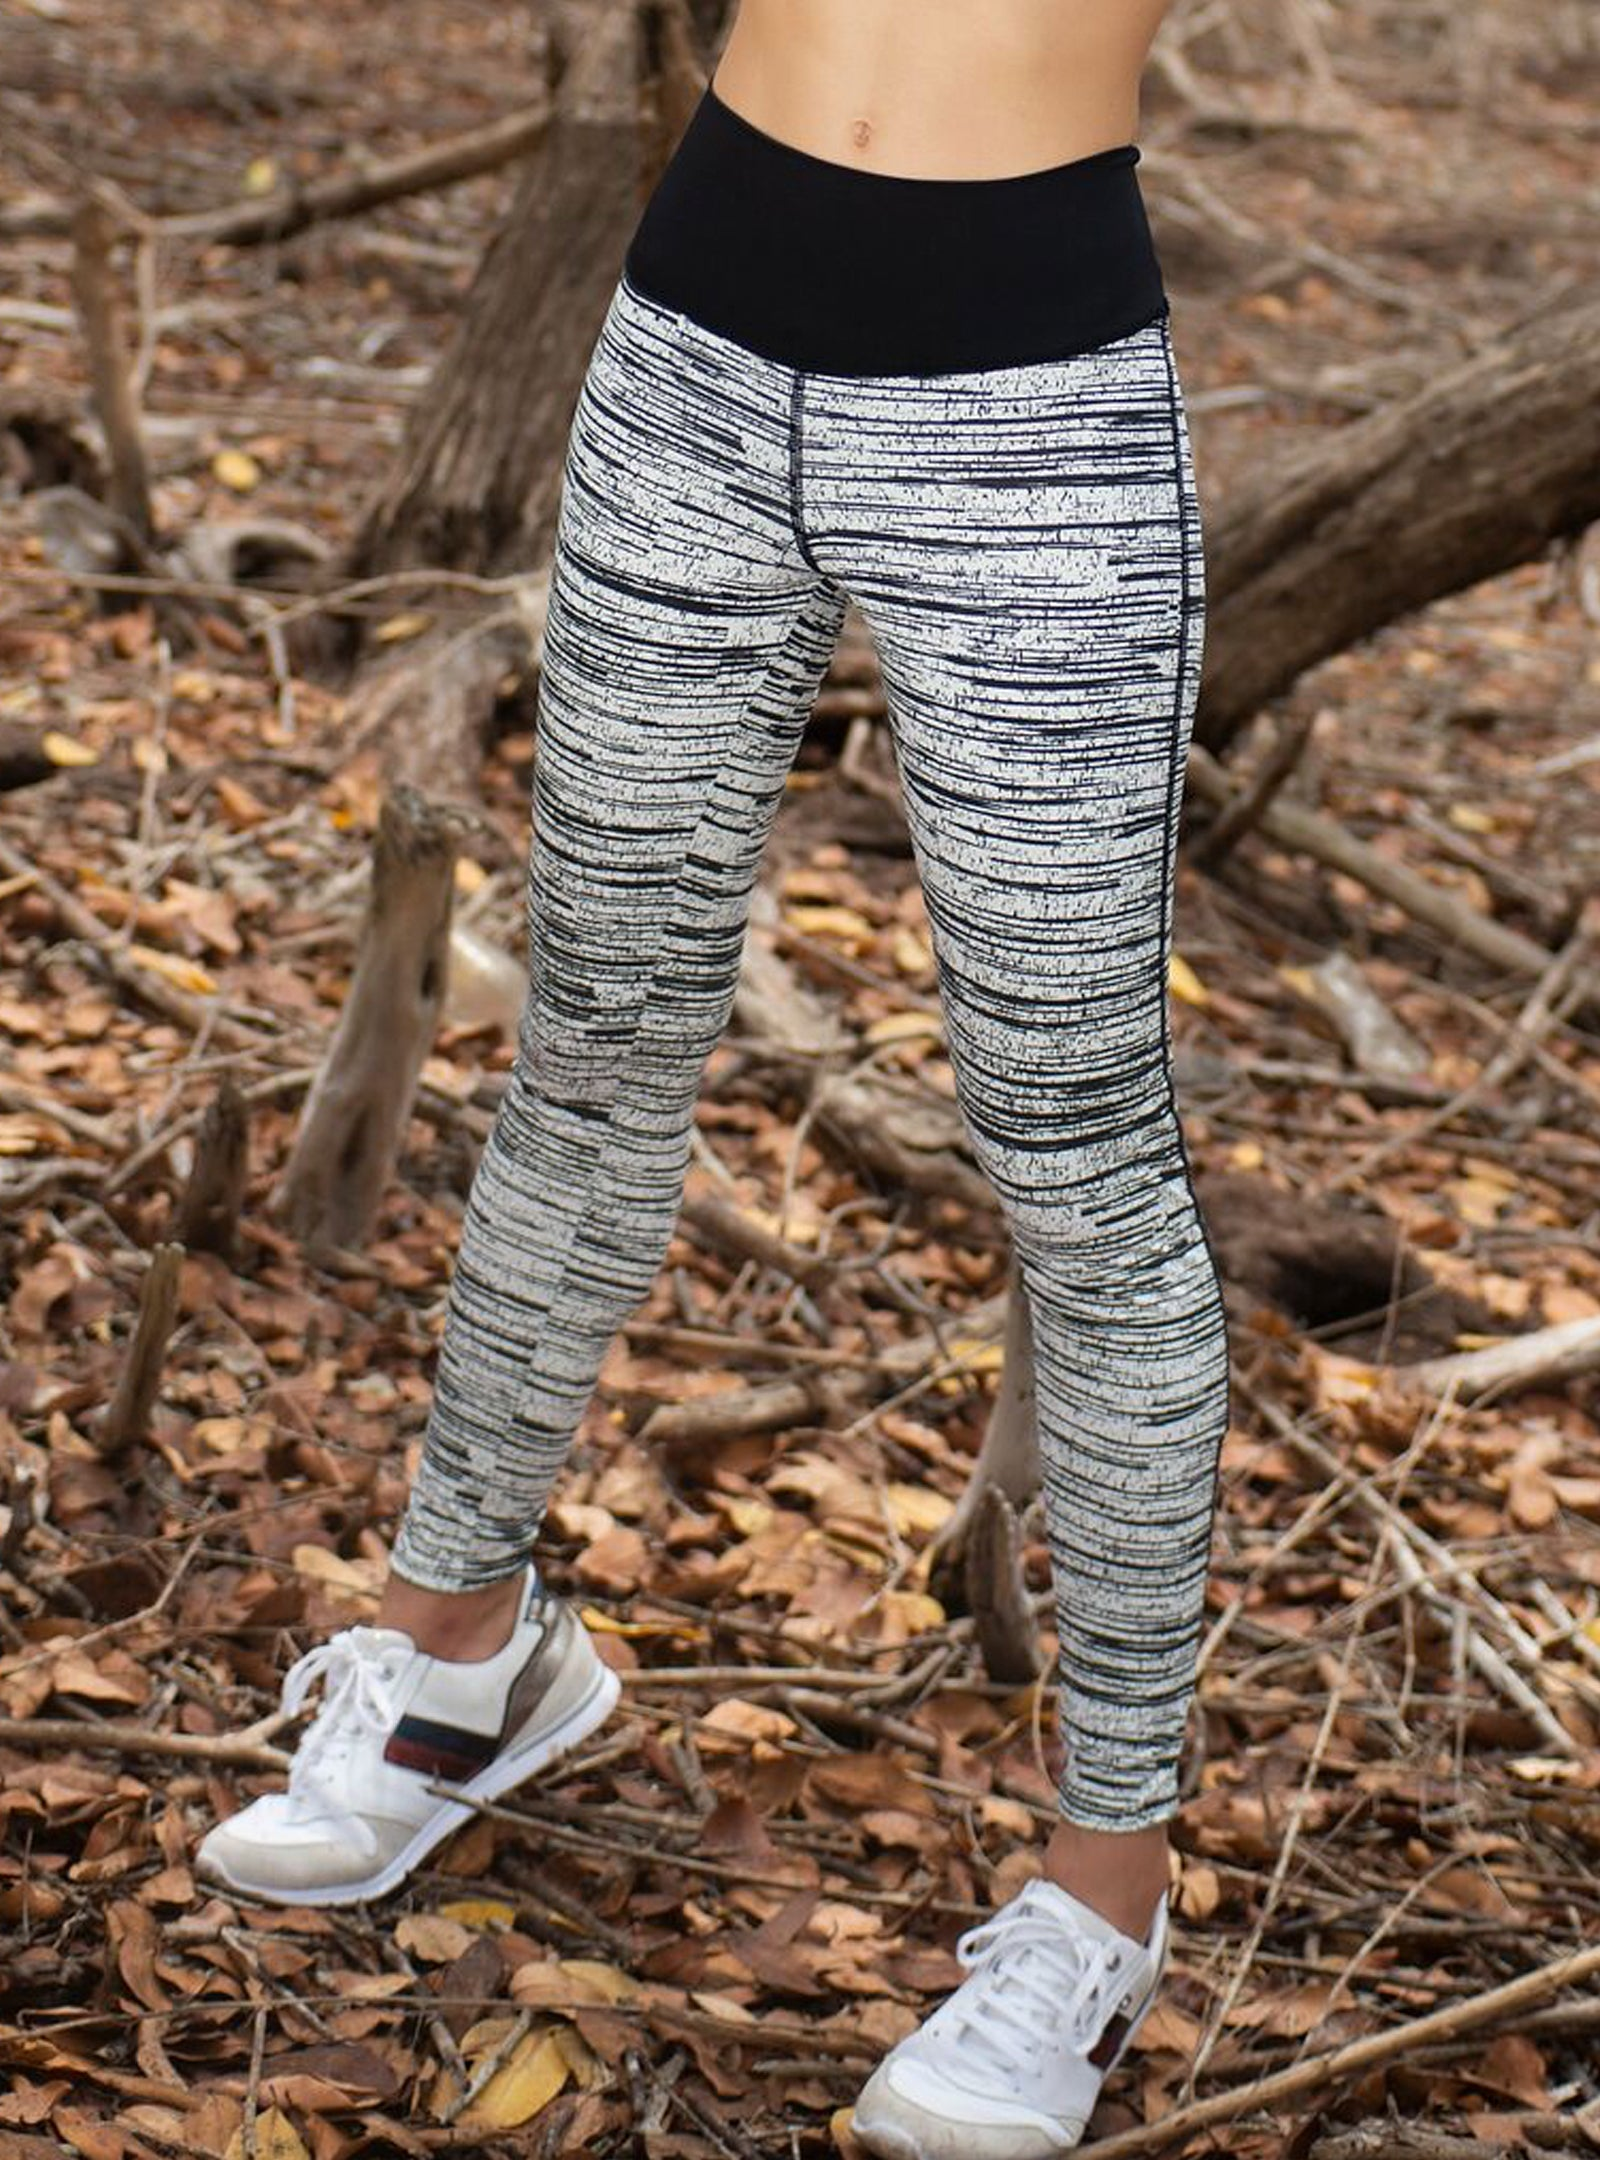 Leggings Ref: 4596